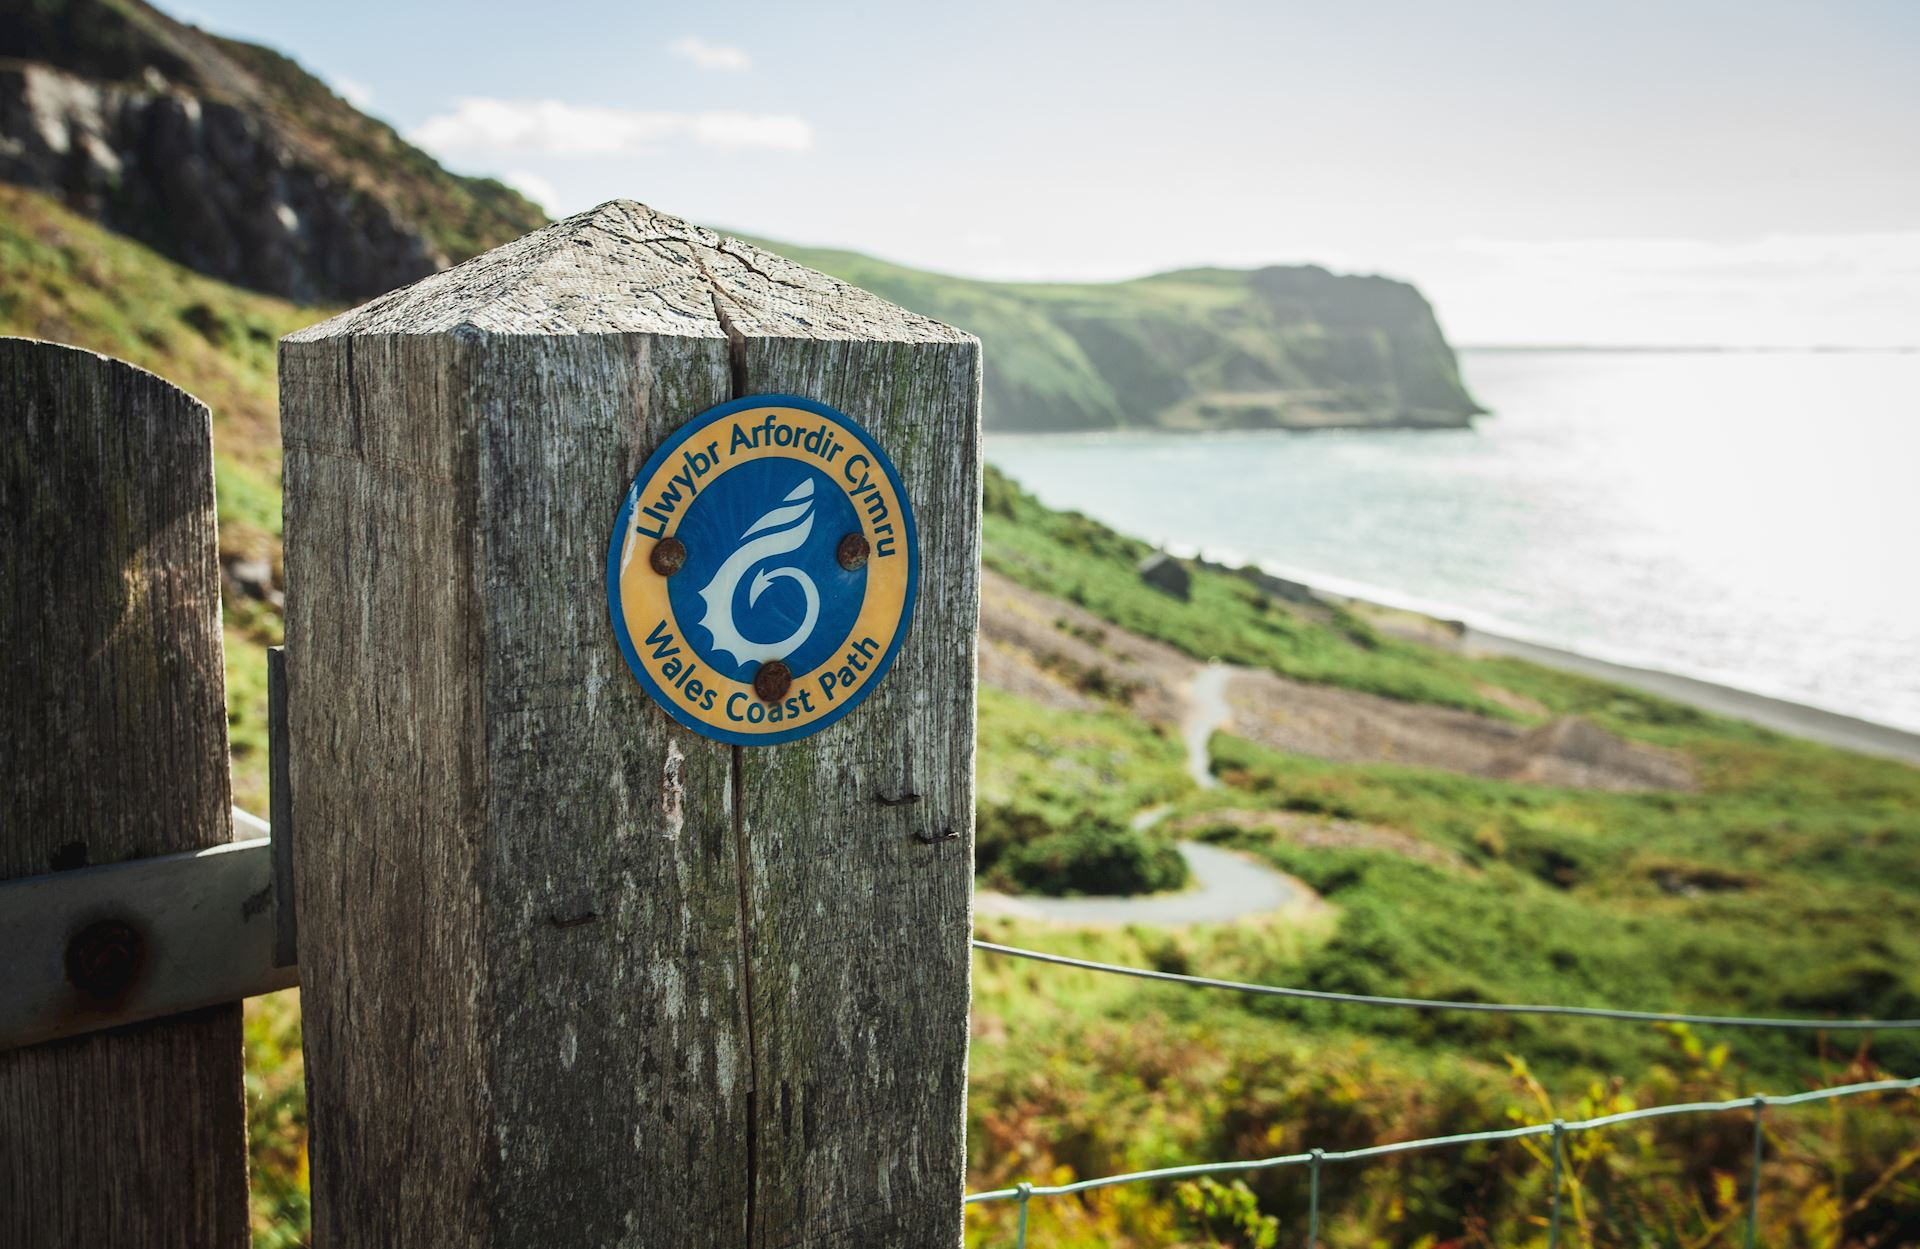 Wales Coast Path waymarker at Nant Gwrtheyrn